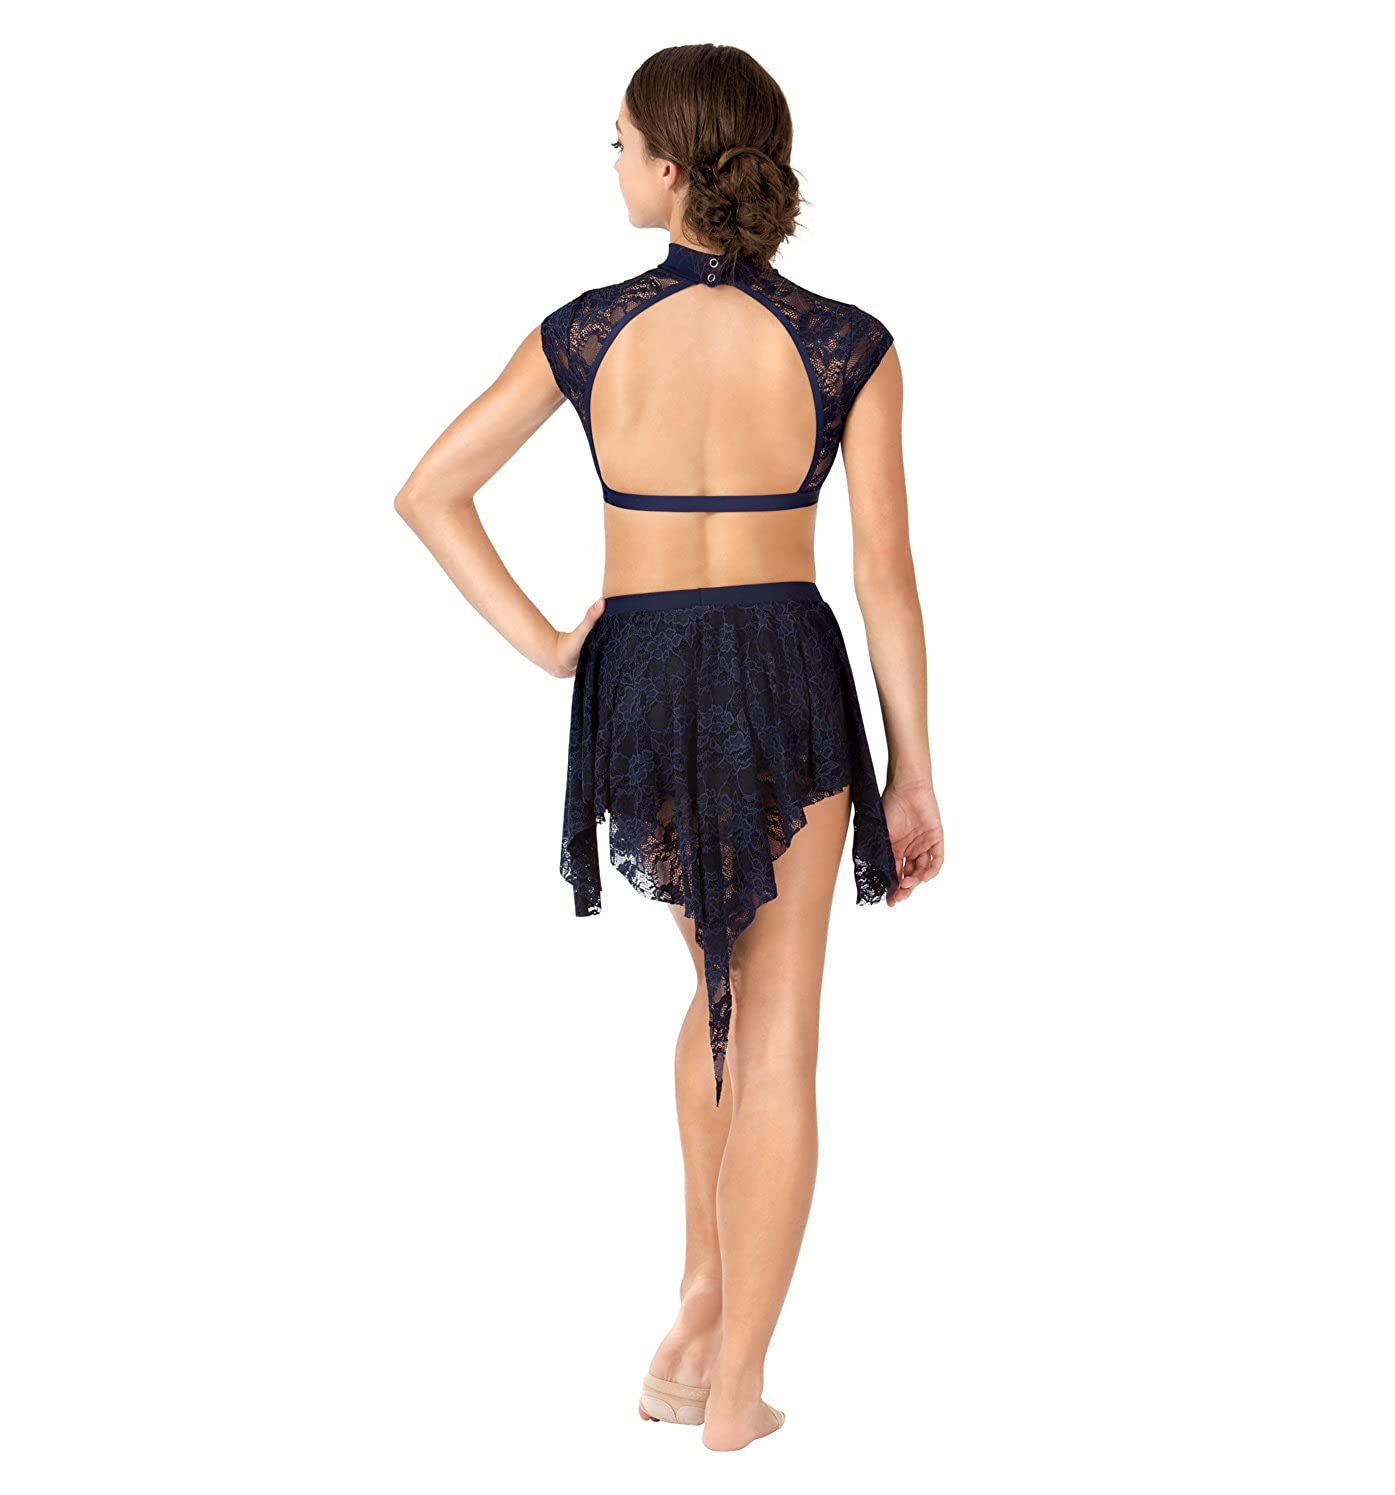 Body Wrappers Womens Uneven Hem Drapey Lace Dance Skirt LC9109